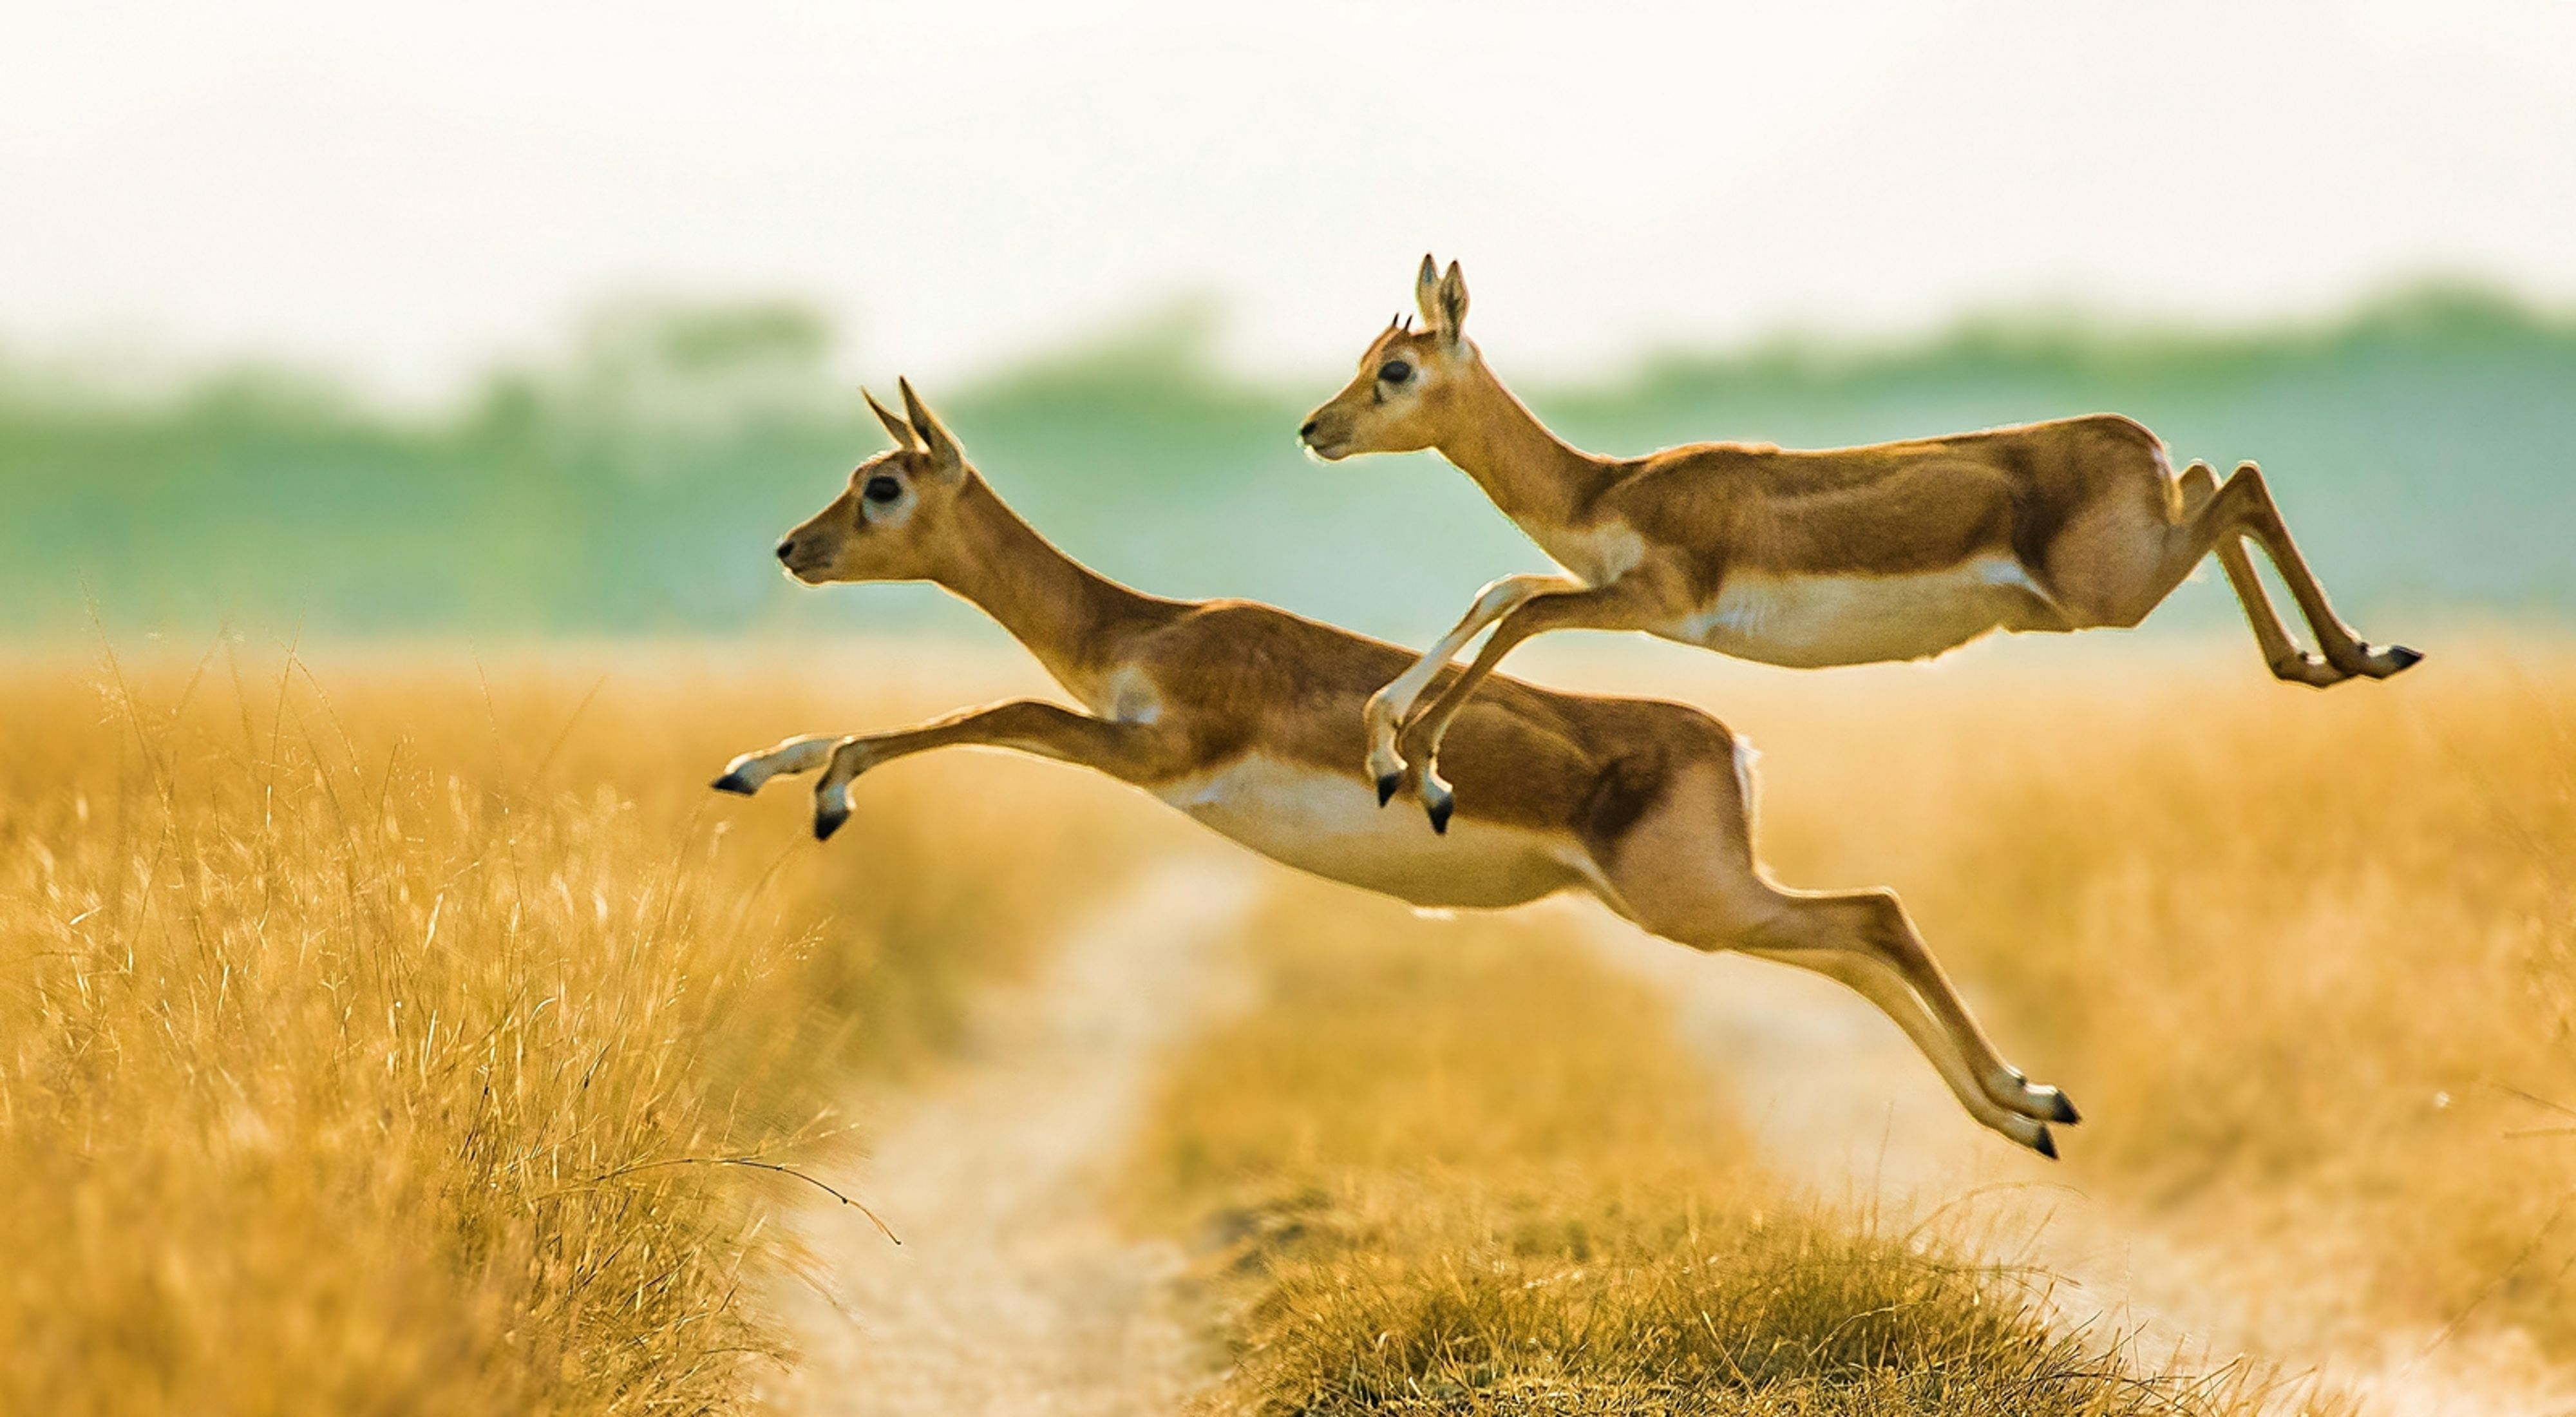 Blackbuck jumping over the muddy trail of the grassland in Talchapar, Rajasthan, India.